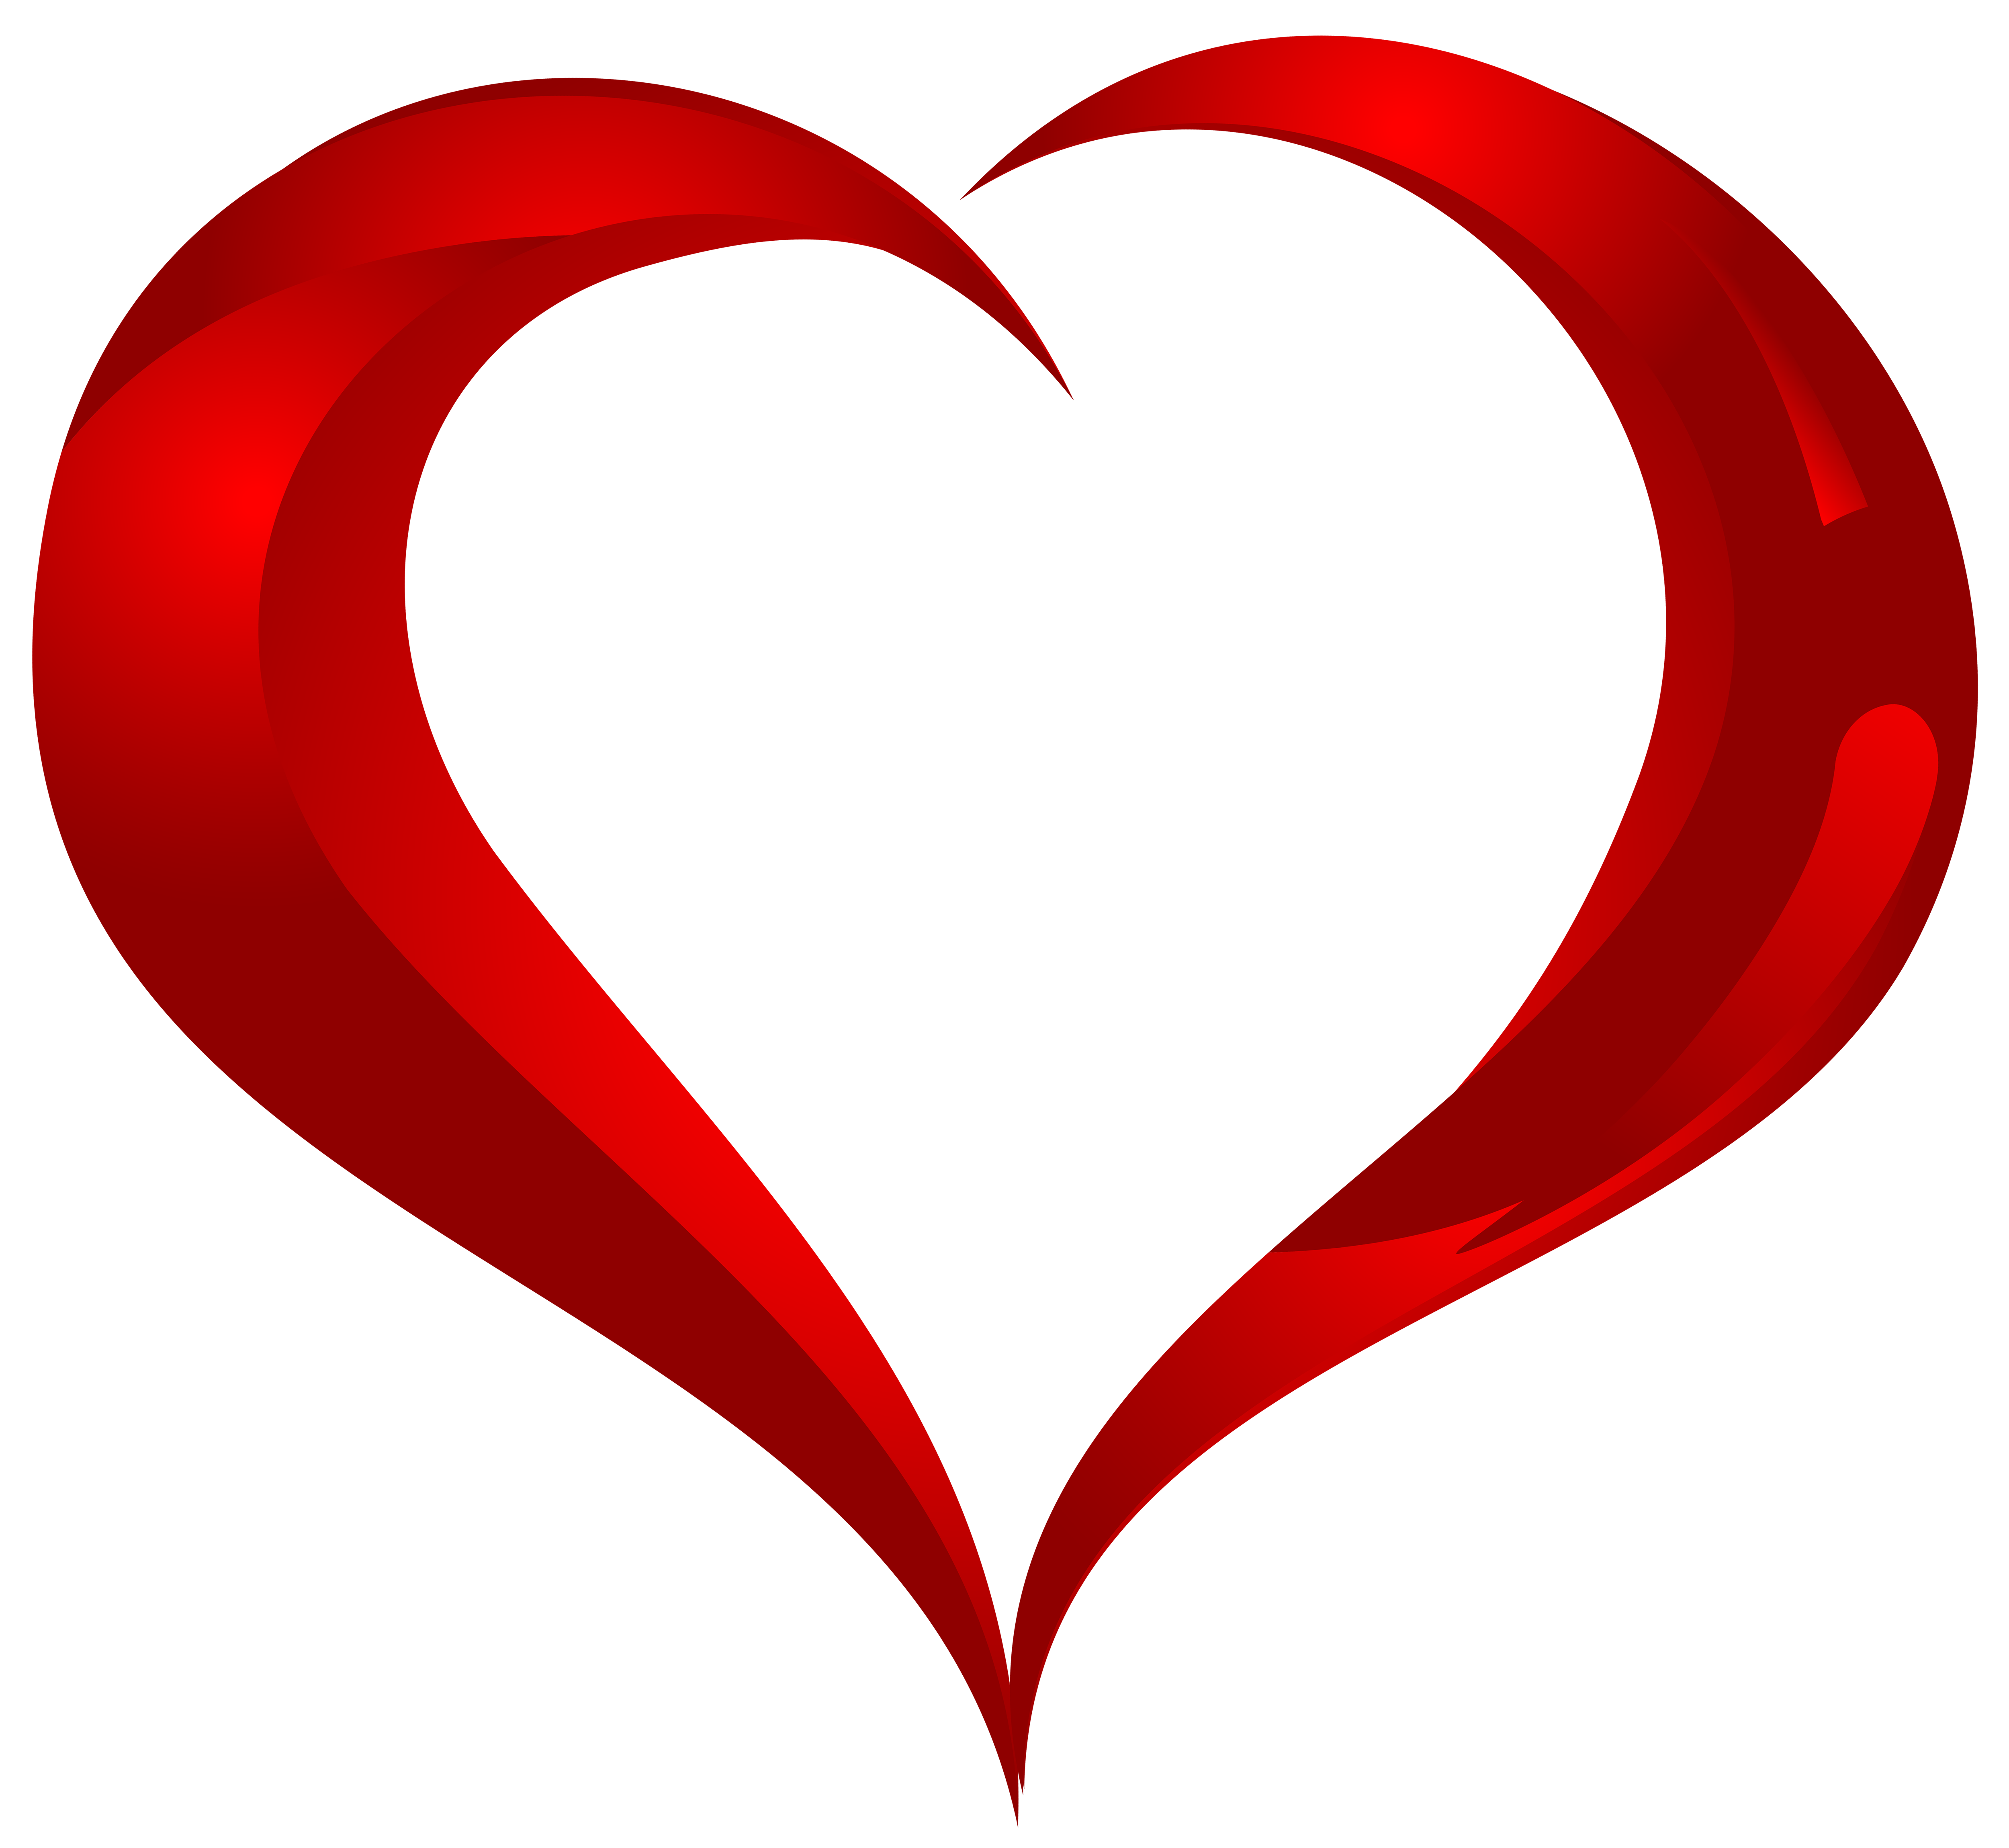 Heart clip art png. Beautiful clipart best web